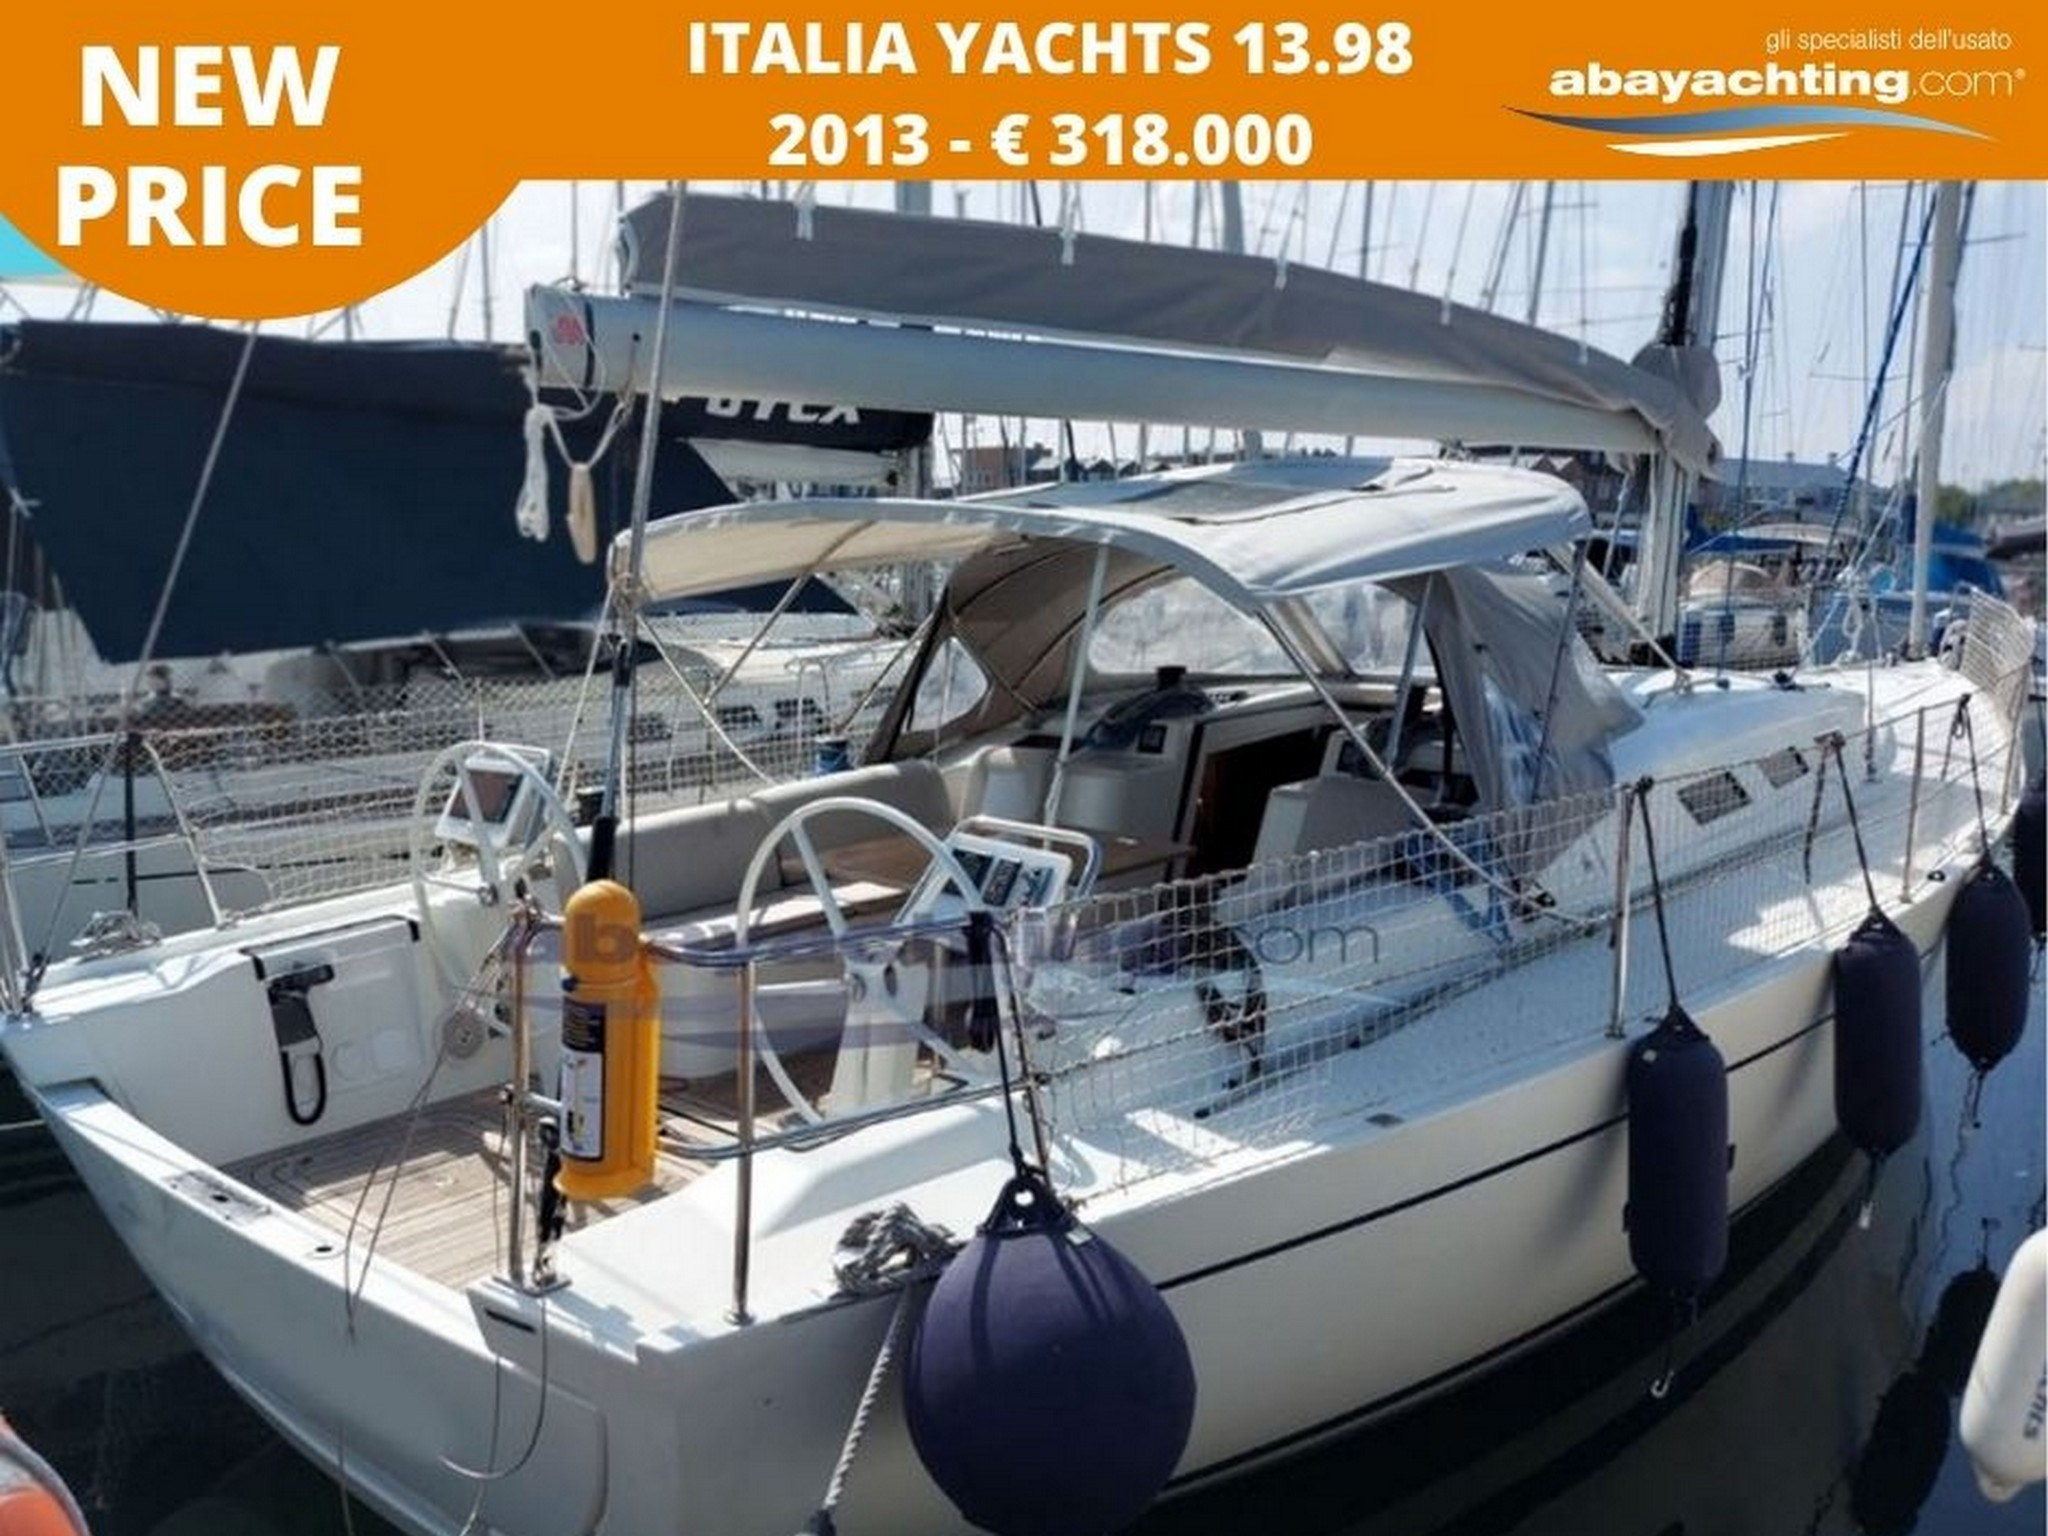 New price Italia Yachts 13.98